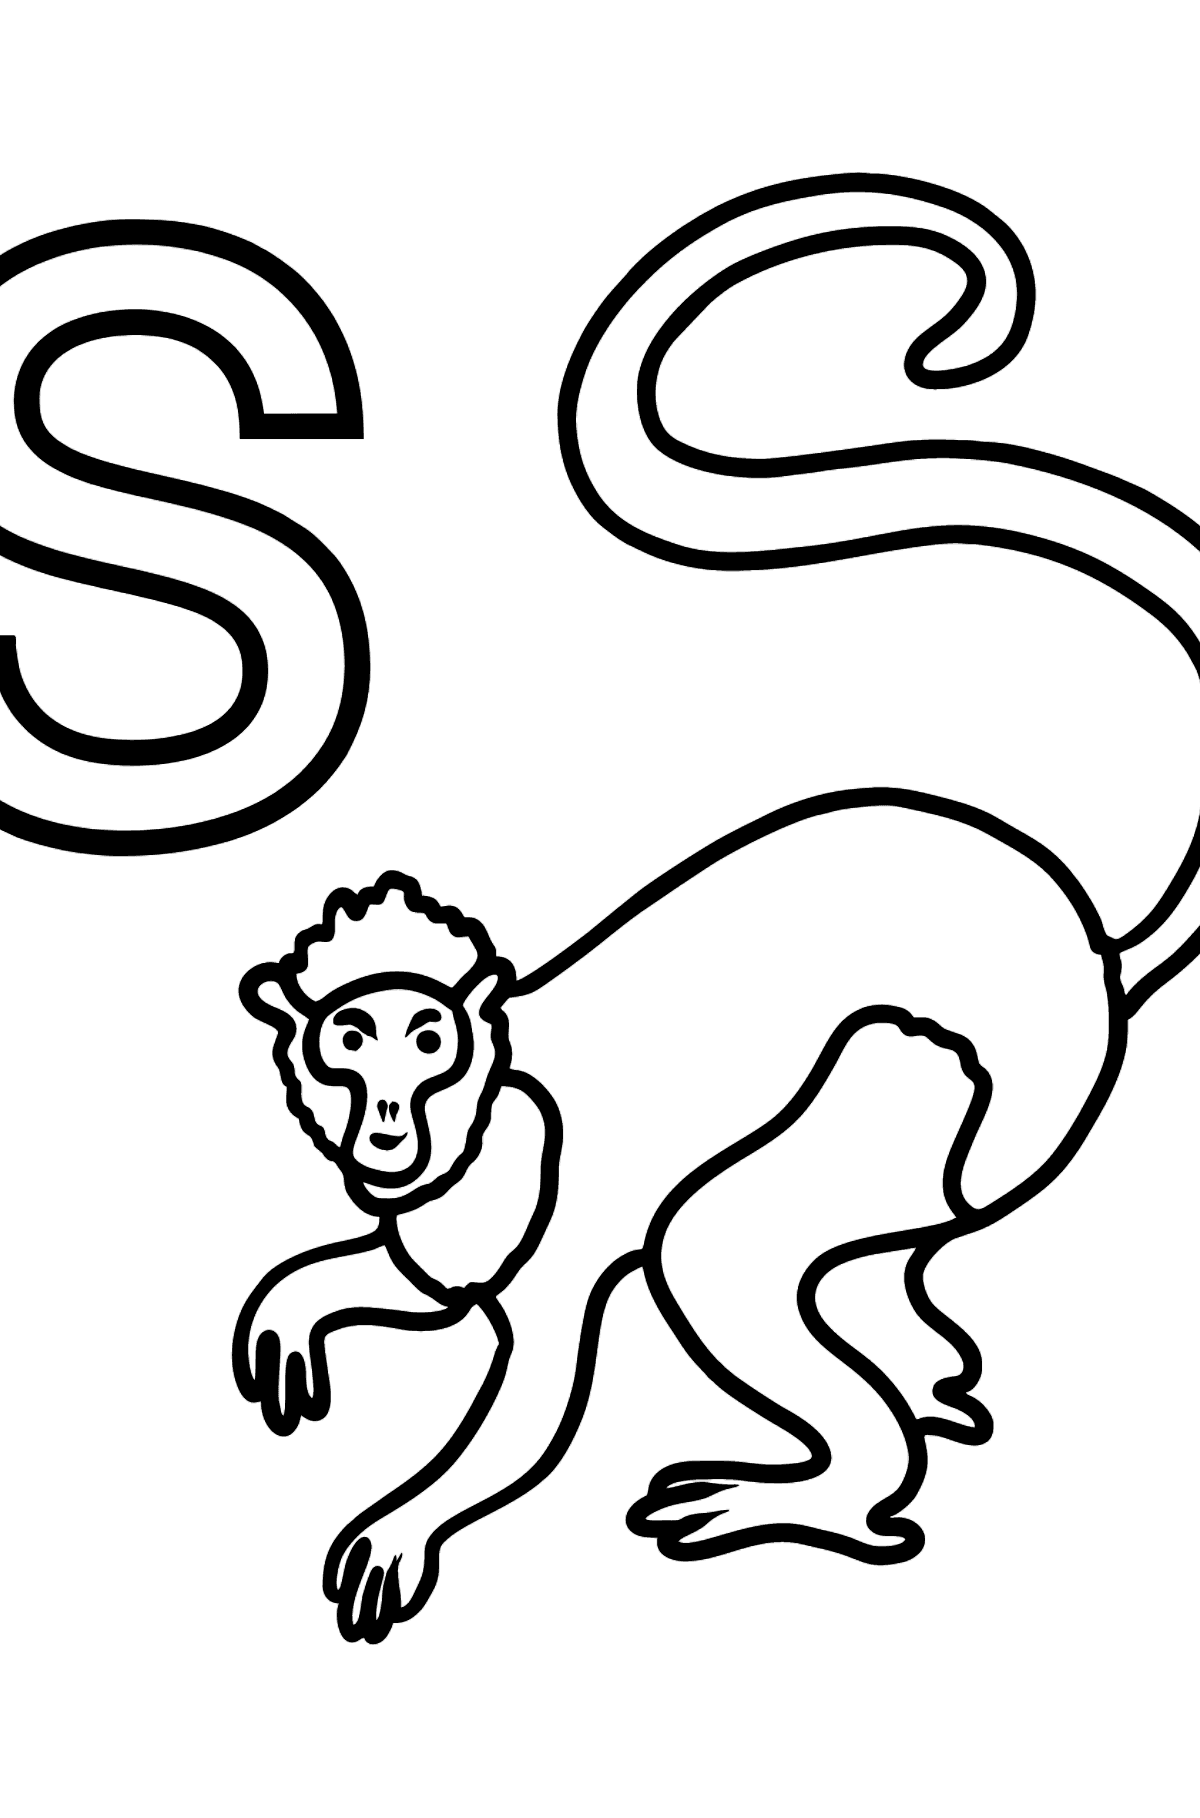 French Letter S coloring pages - SINGE - Coloring Pages for Kids